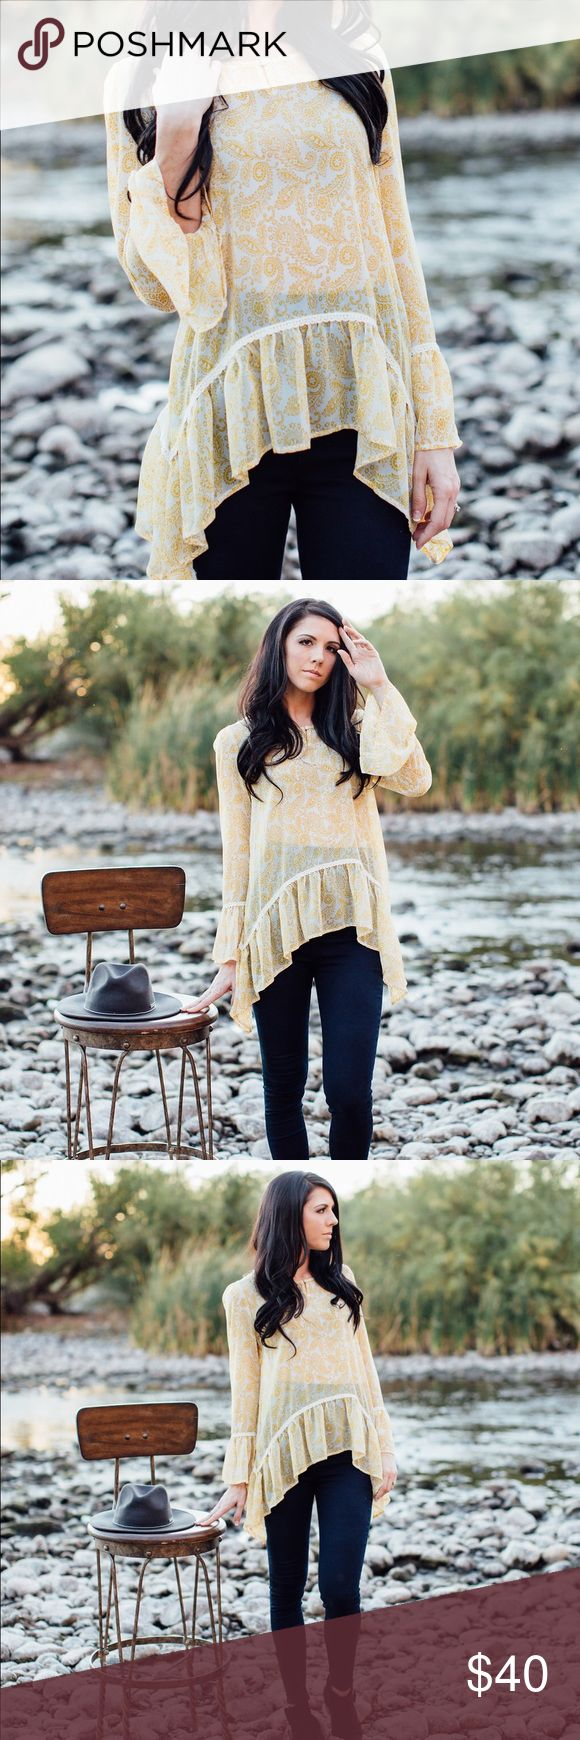 Paisley bell sleeve blouse Plus sizes included Sheer paisley yellow bell sleeve blouse! 100% polyester Tops Blouses